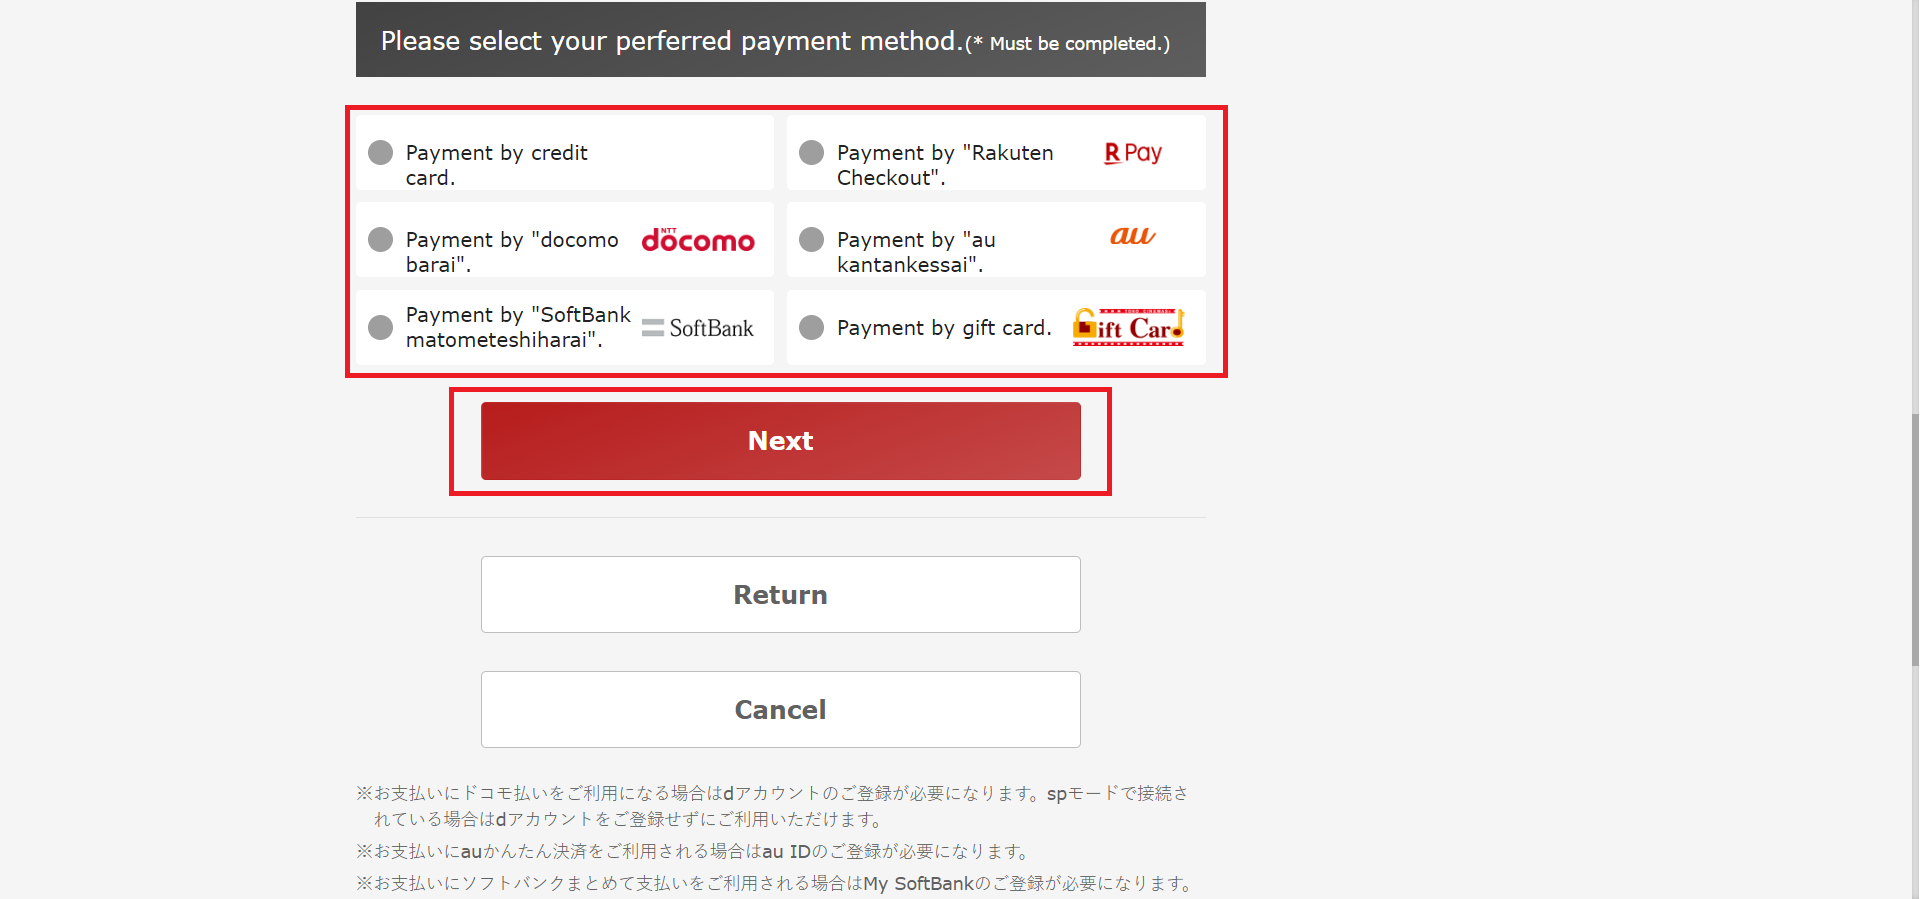 Steps on How to Buy Movie Tickets Online for Toho Cinemas-06-02